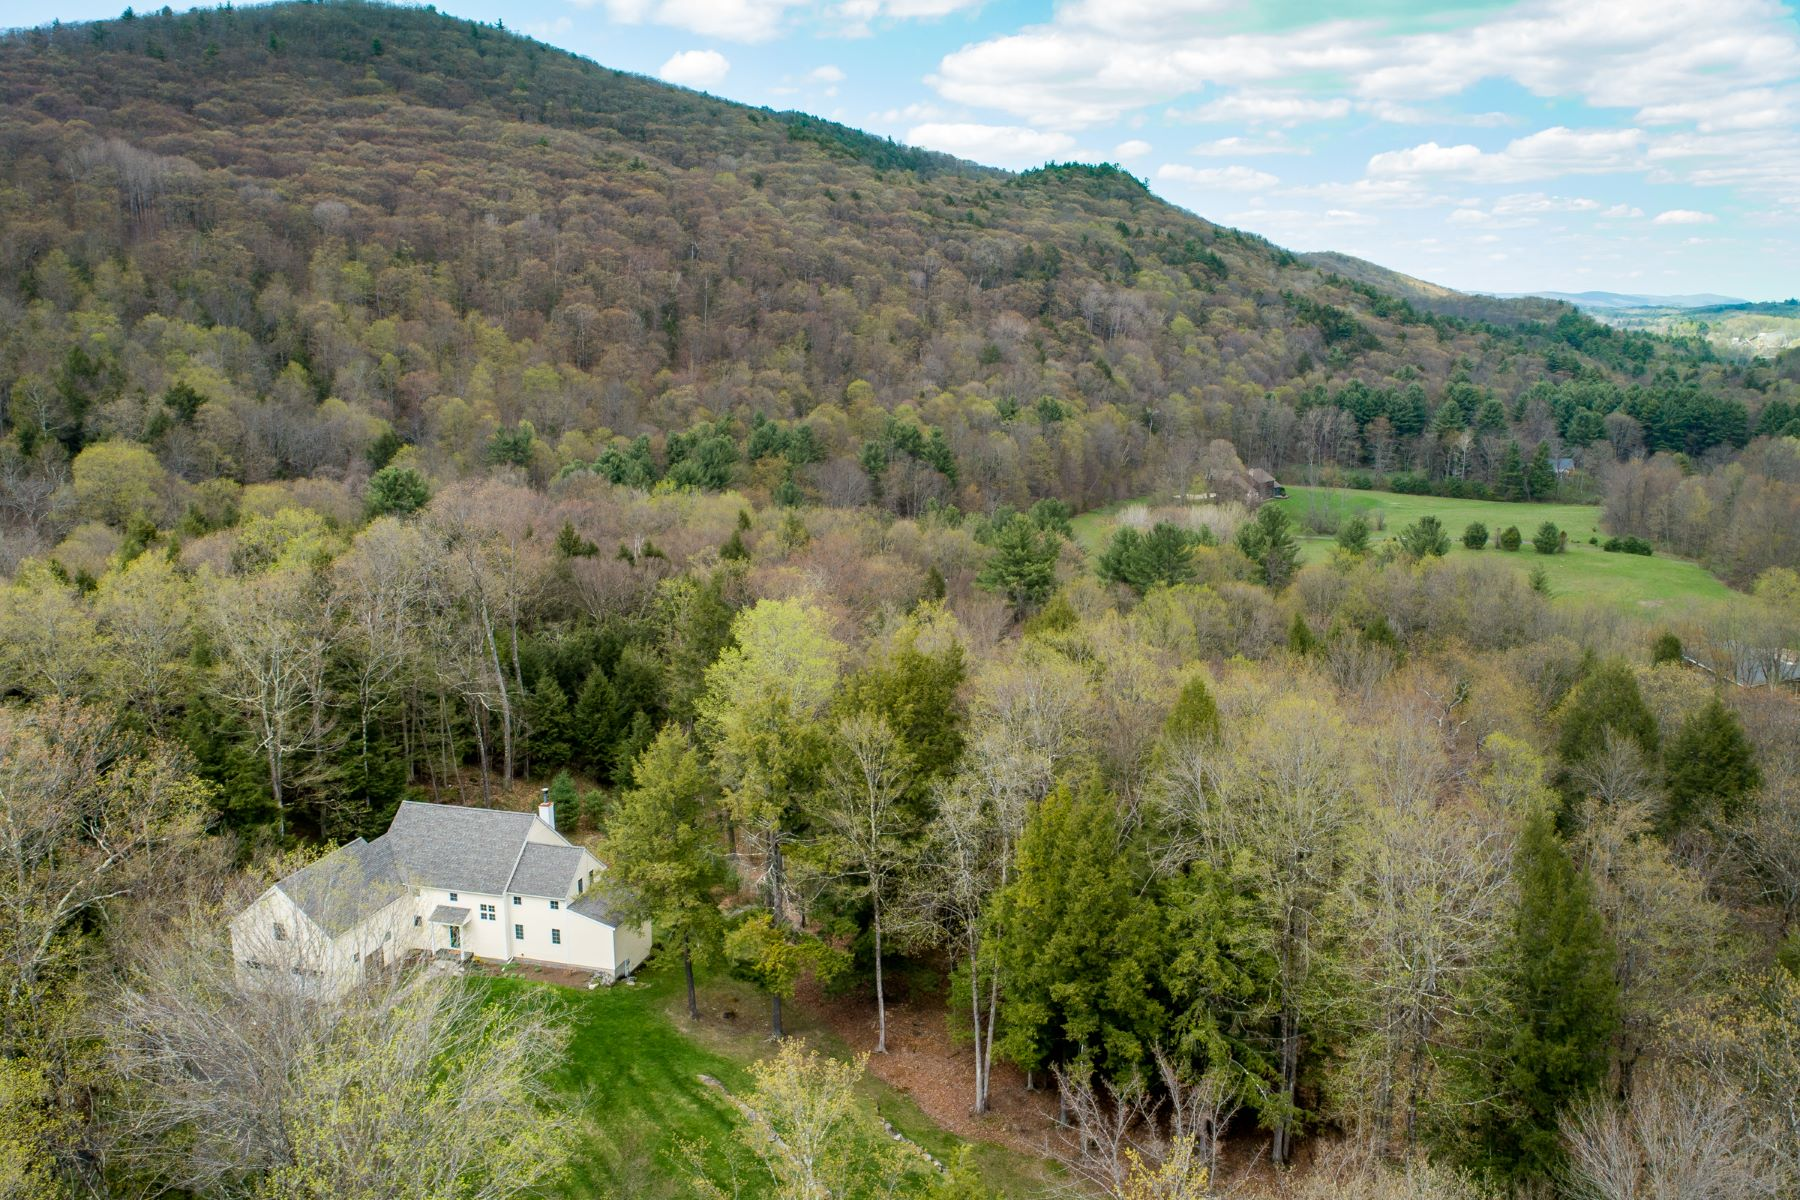 Casa Unifamiliar por un Venta en Light-Filled Contemporary with Gorgeous Mountain Views 30 East Alford Rd West Stockbridge, Massachusetts 01266 Estados Unidos